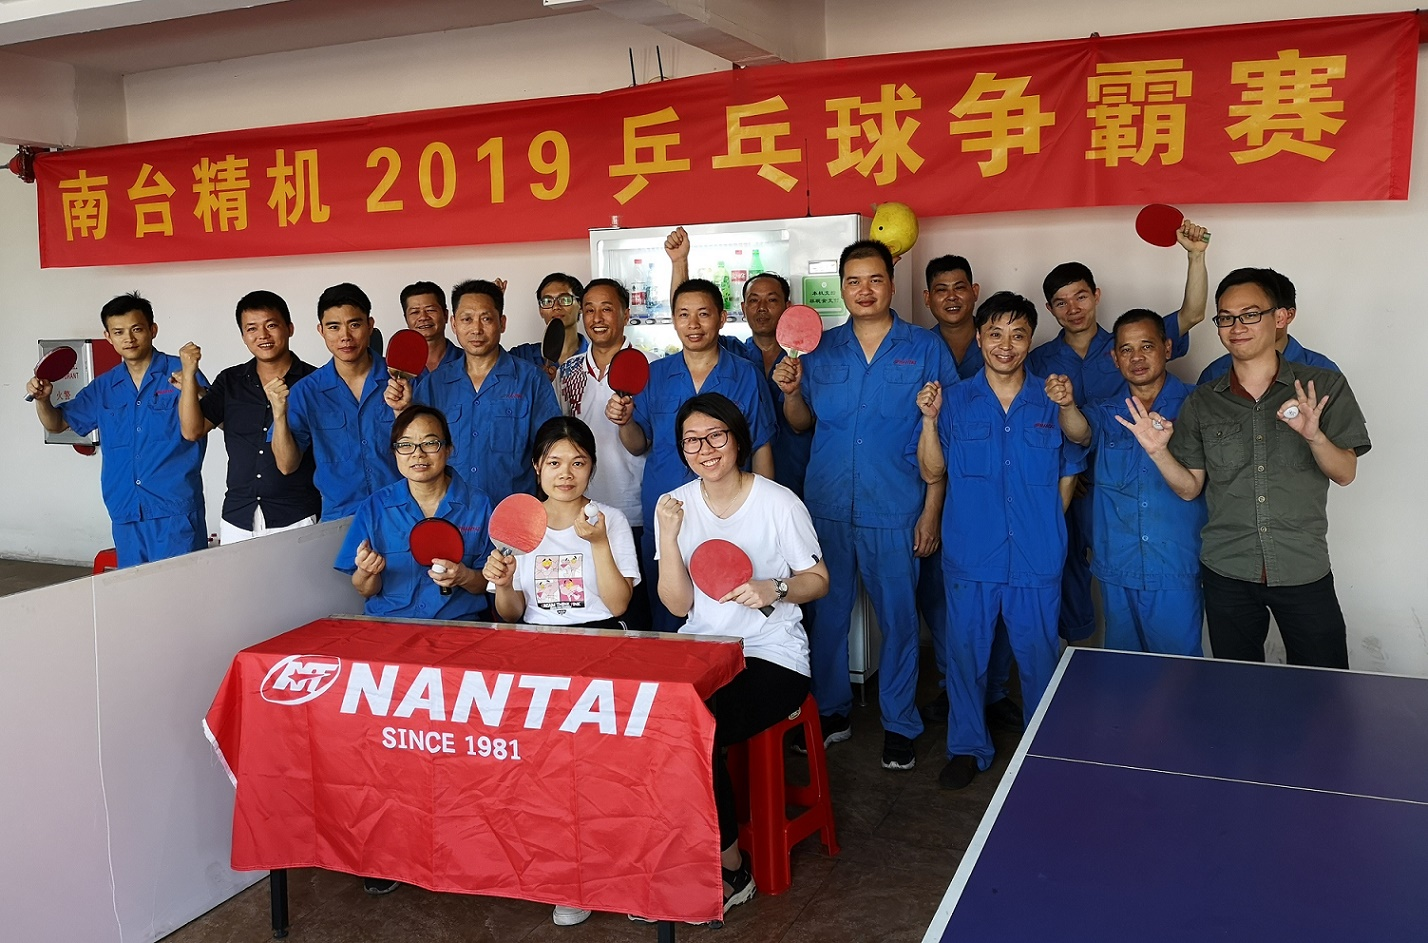 Nantai table tennis competition 2019